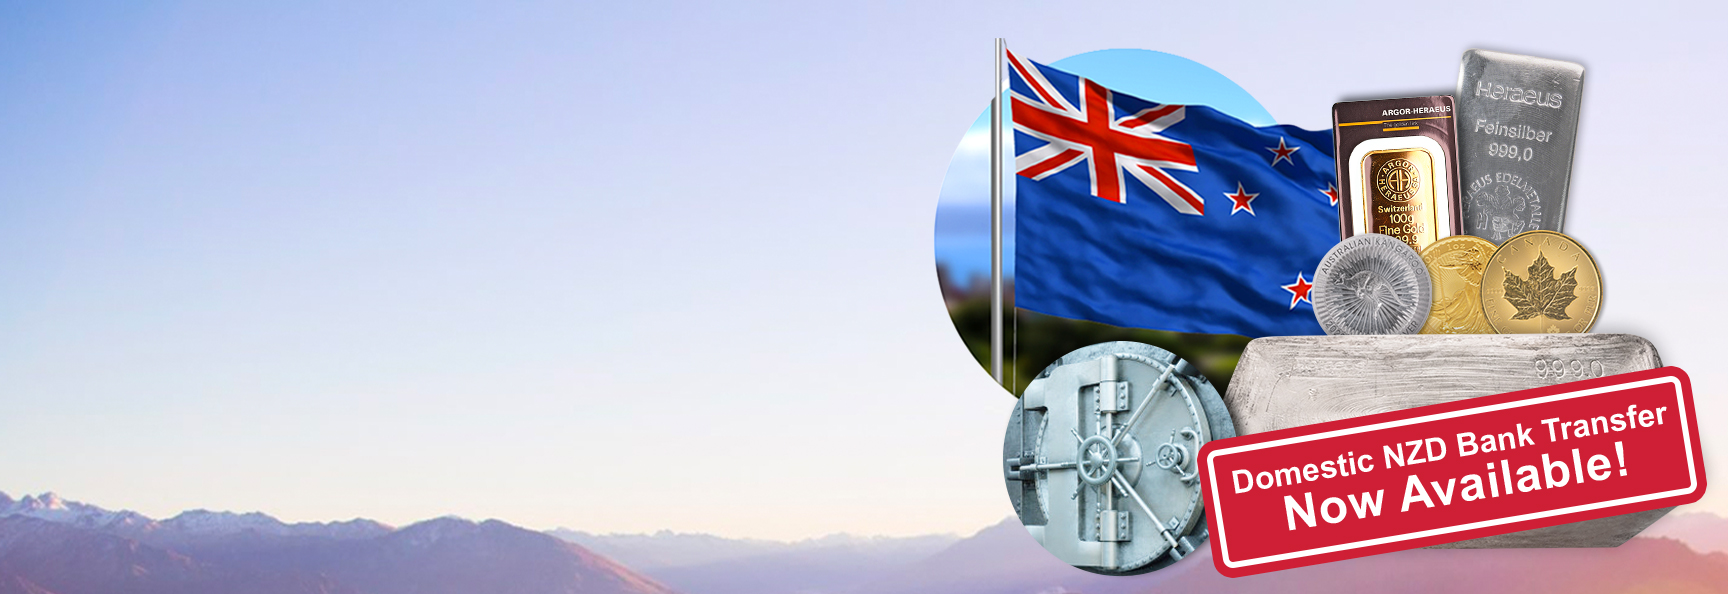 Buy & Store Bullion in New Zealand with BullionStar